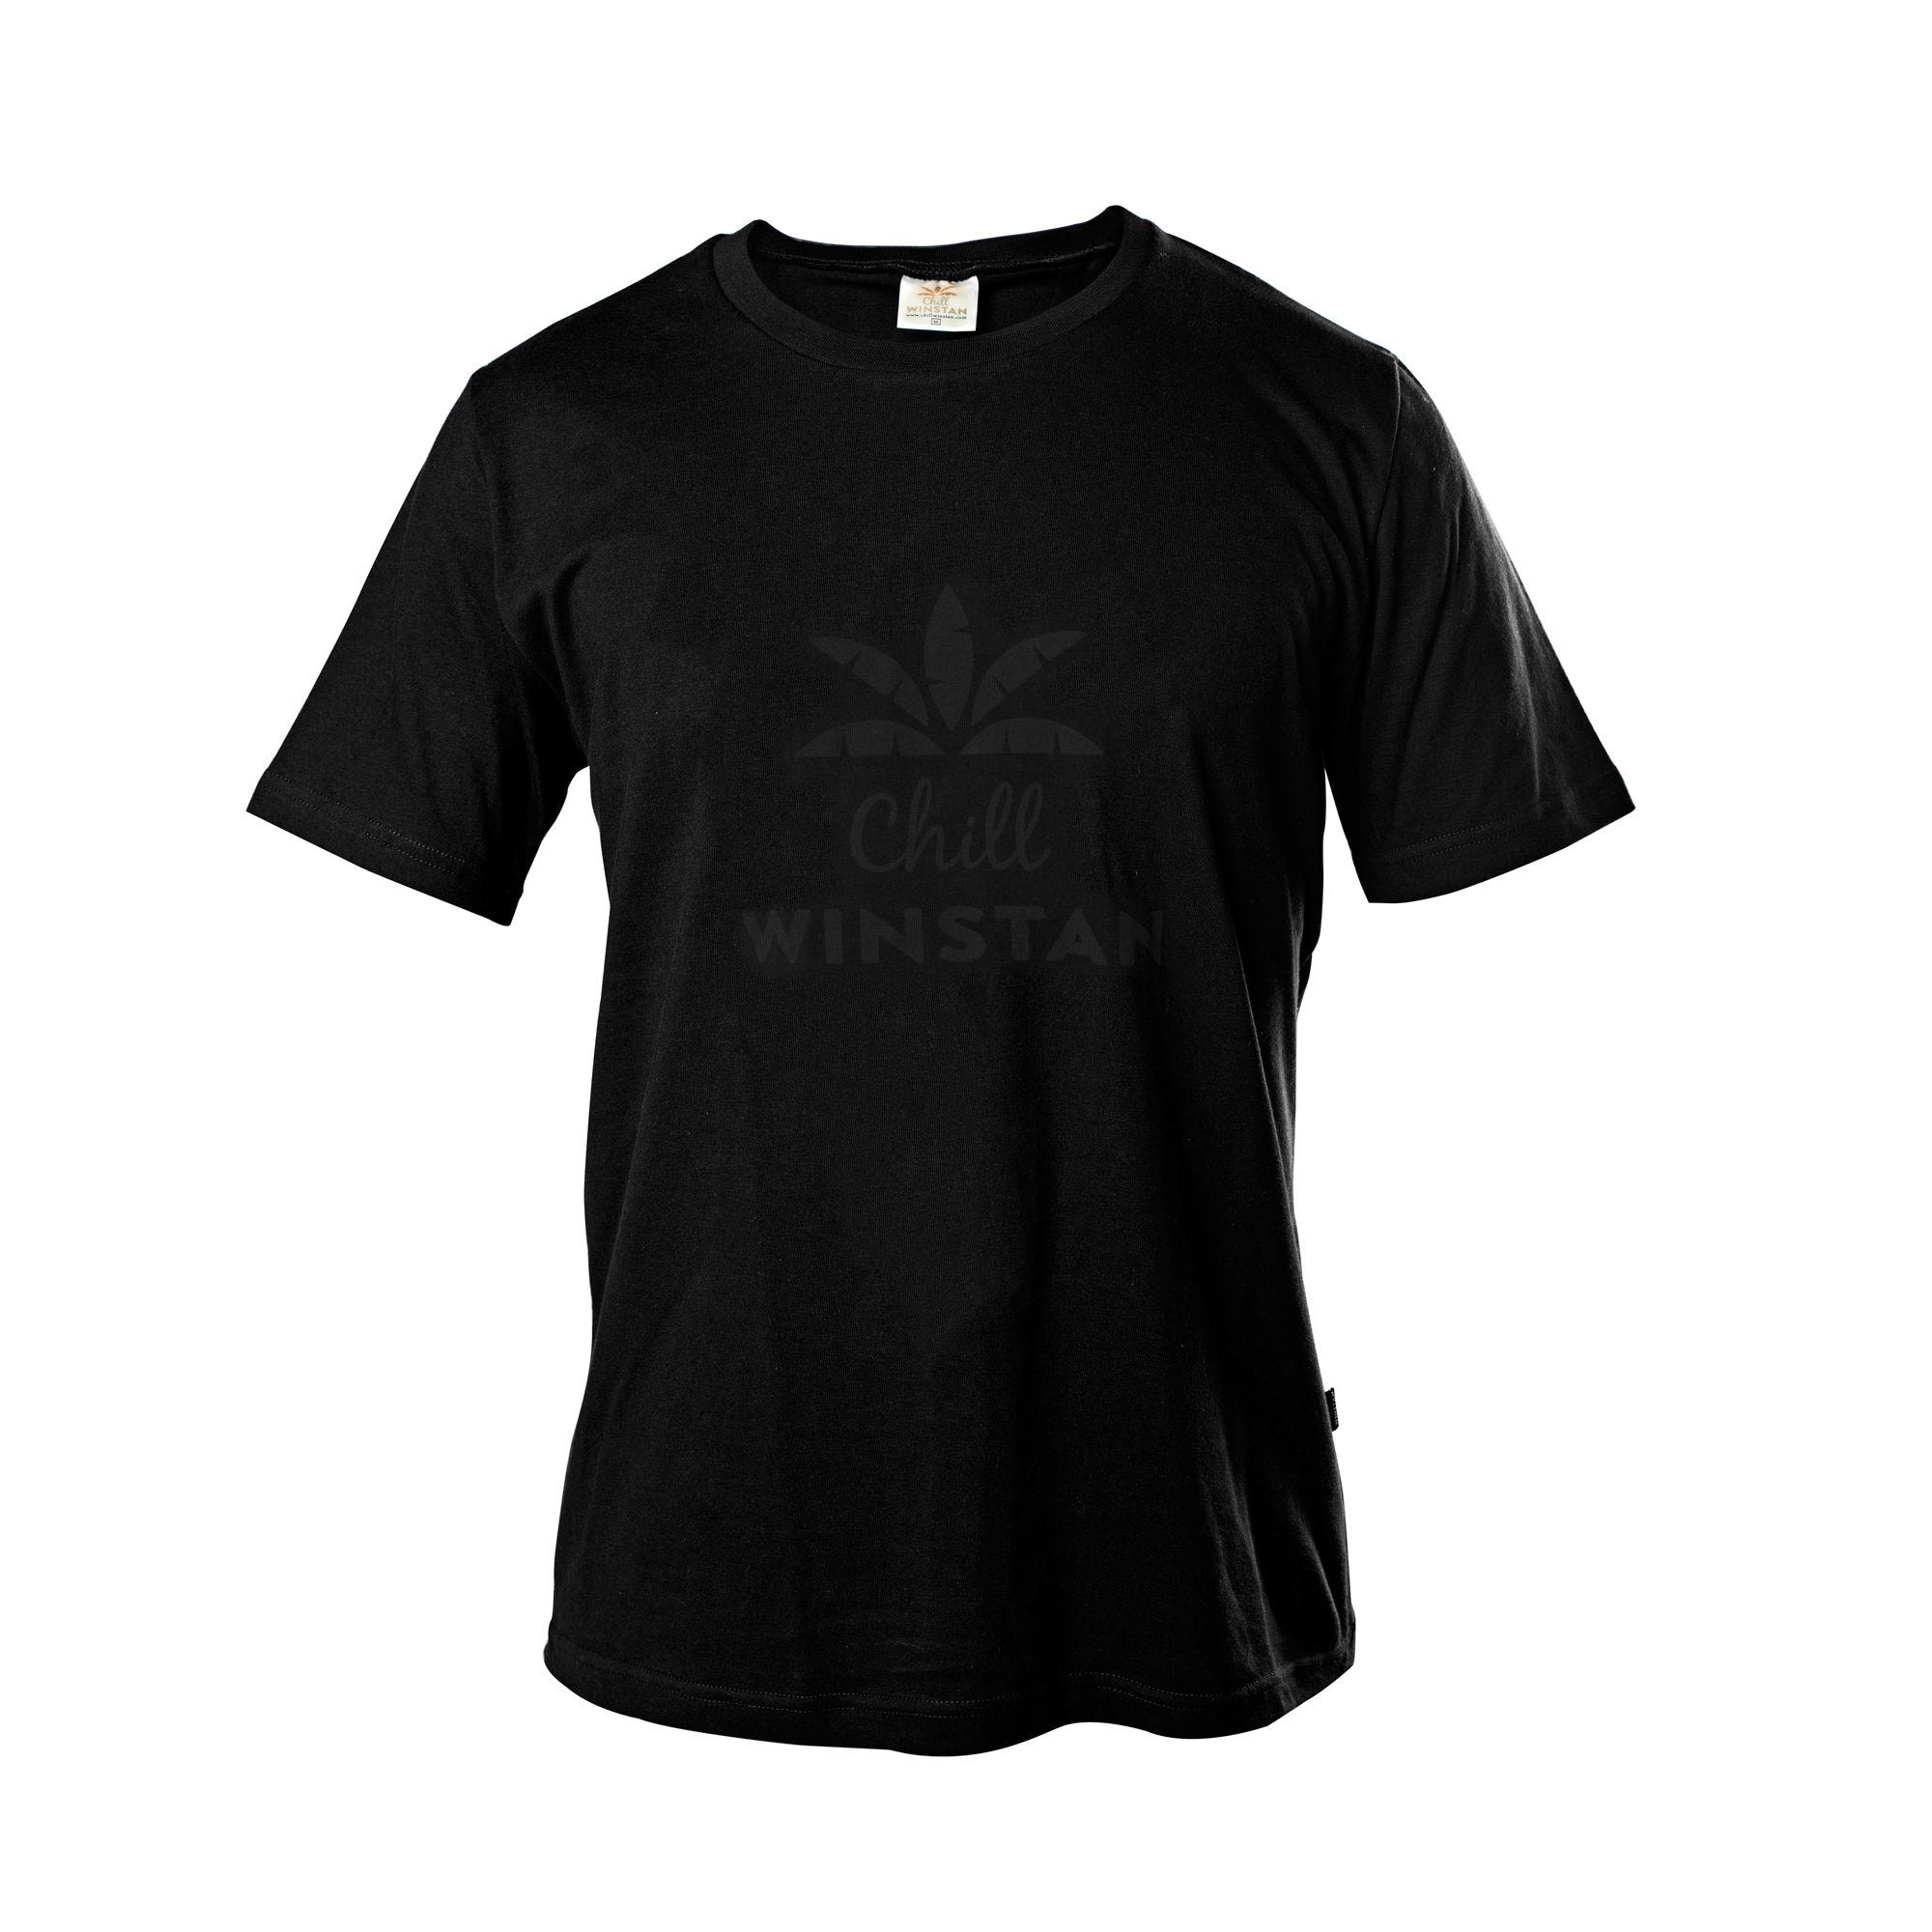 Black T-Shirt / Black Logo